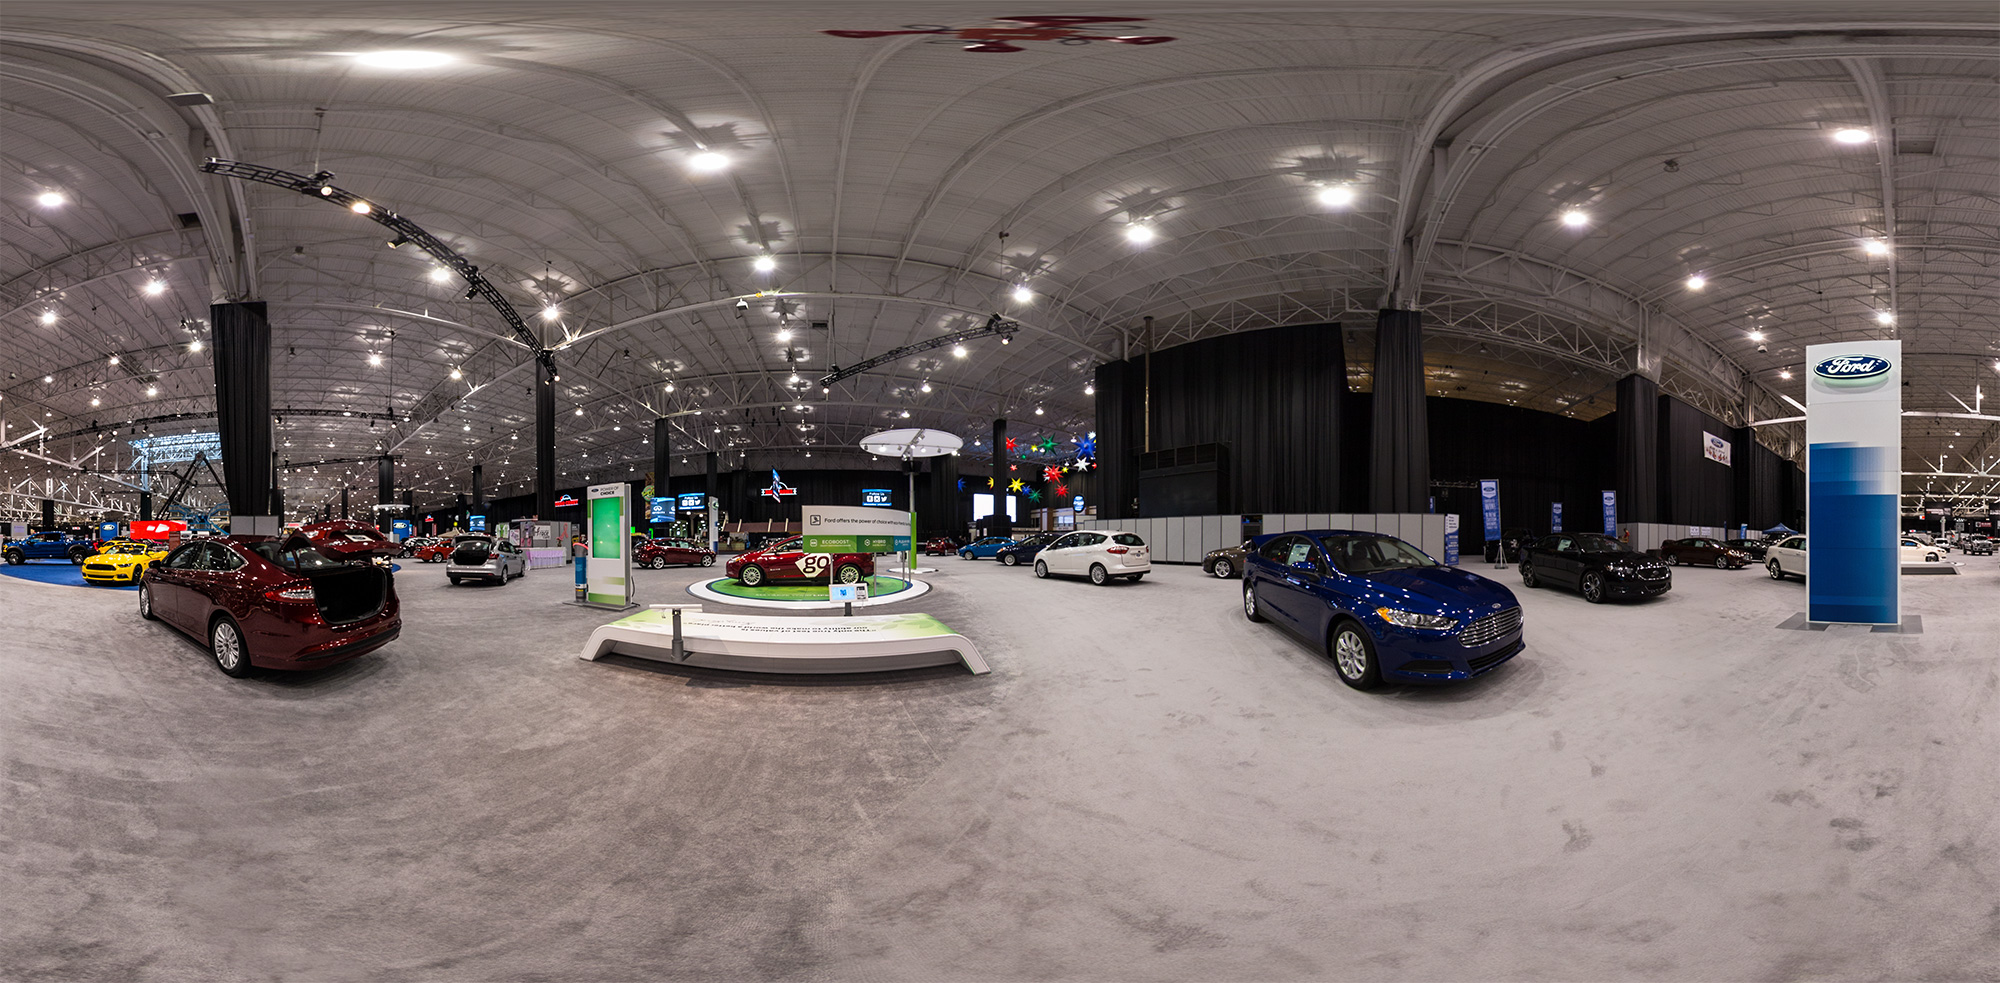 Cleveland Auto Show - Ford Display